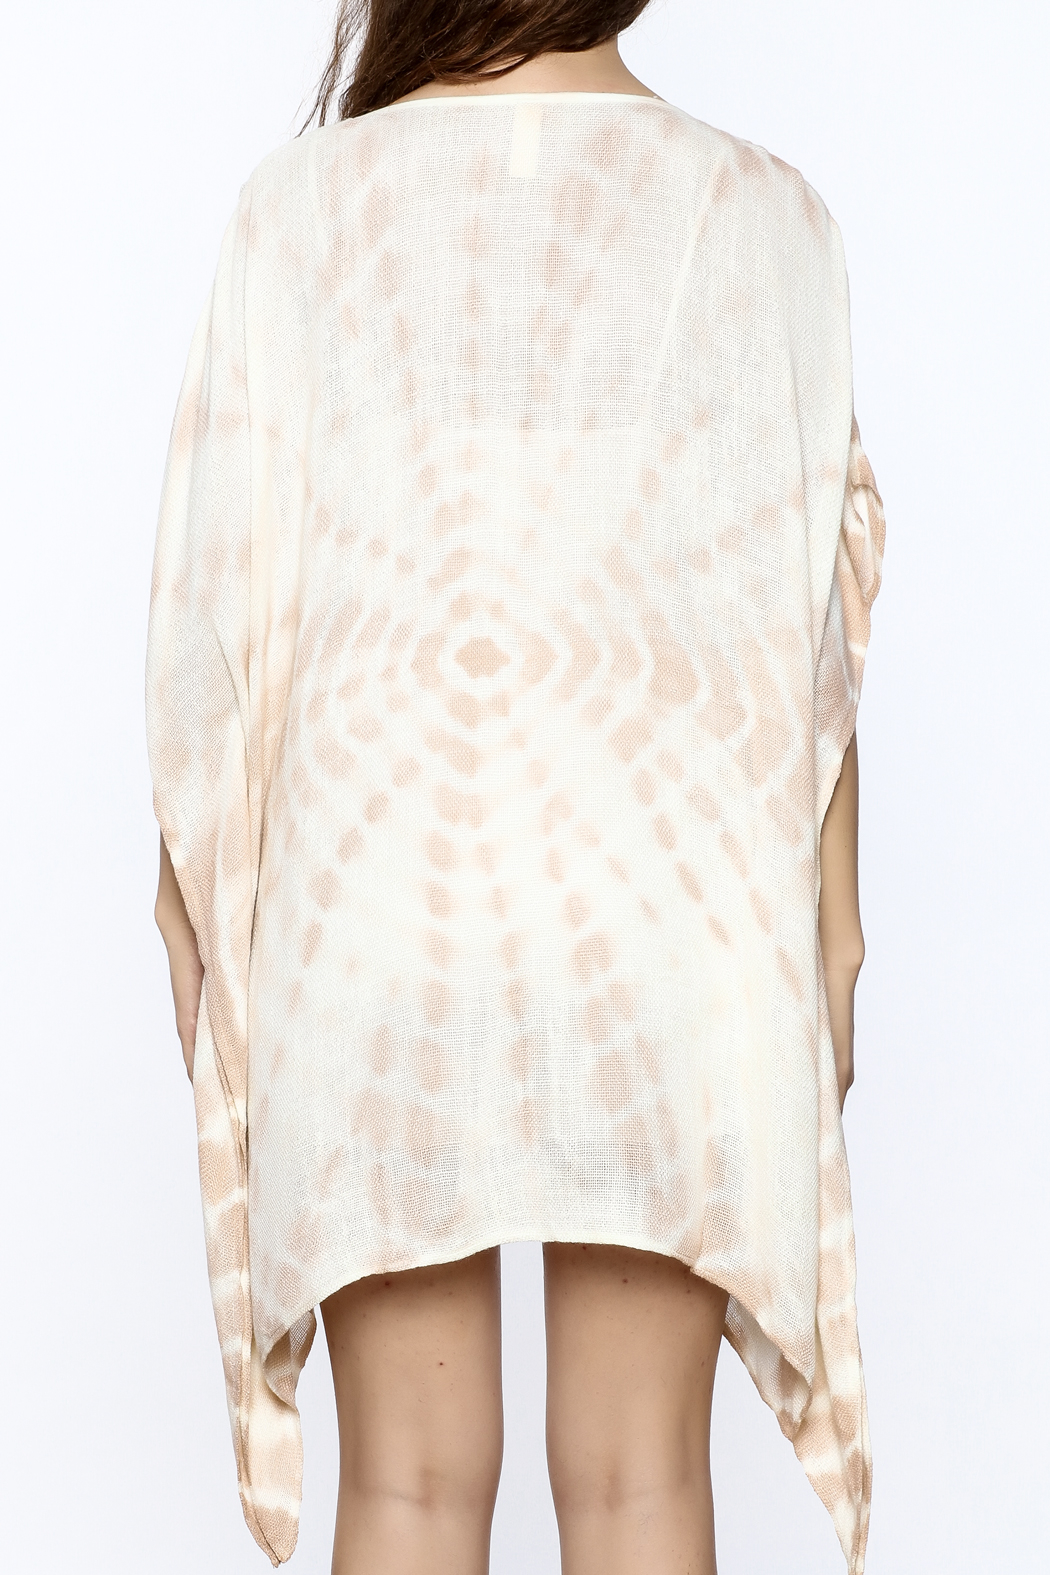 Elan Tan Tunic Dress - Back Cropped Image